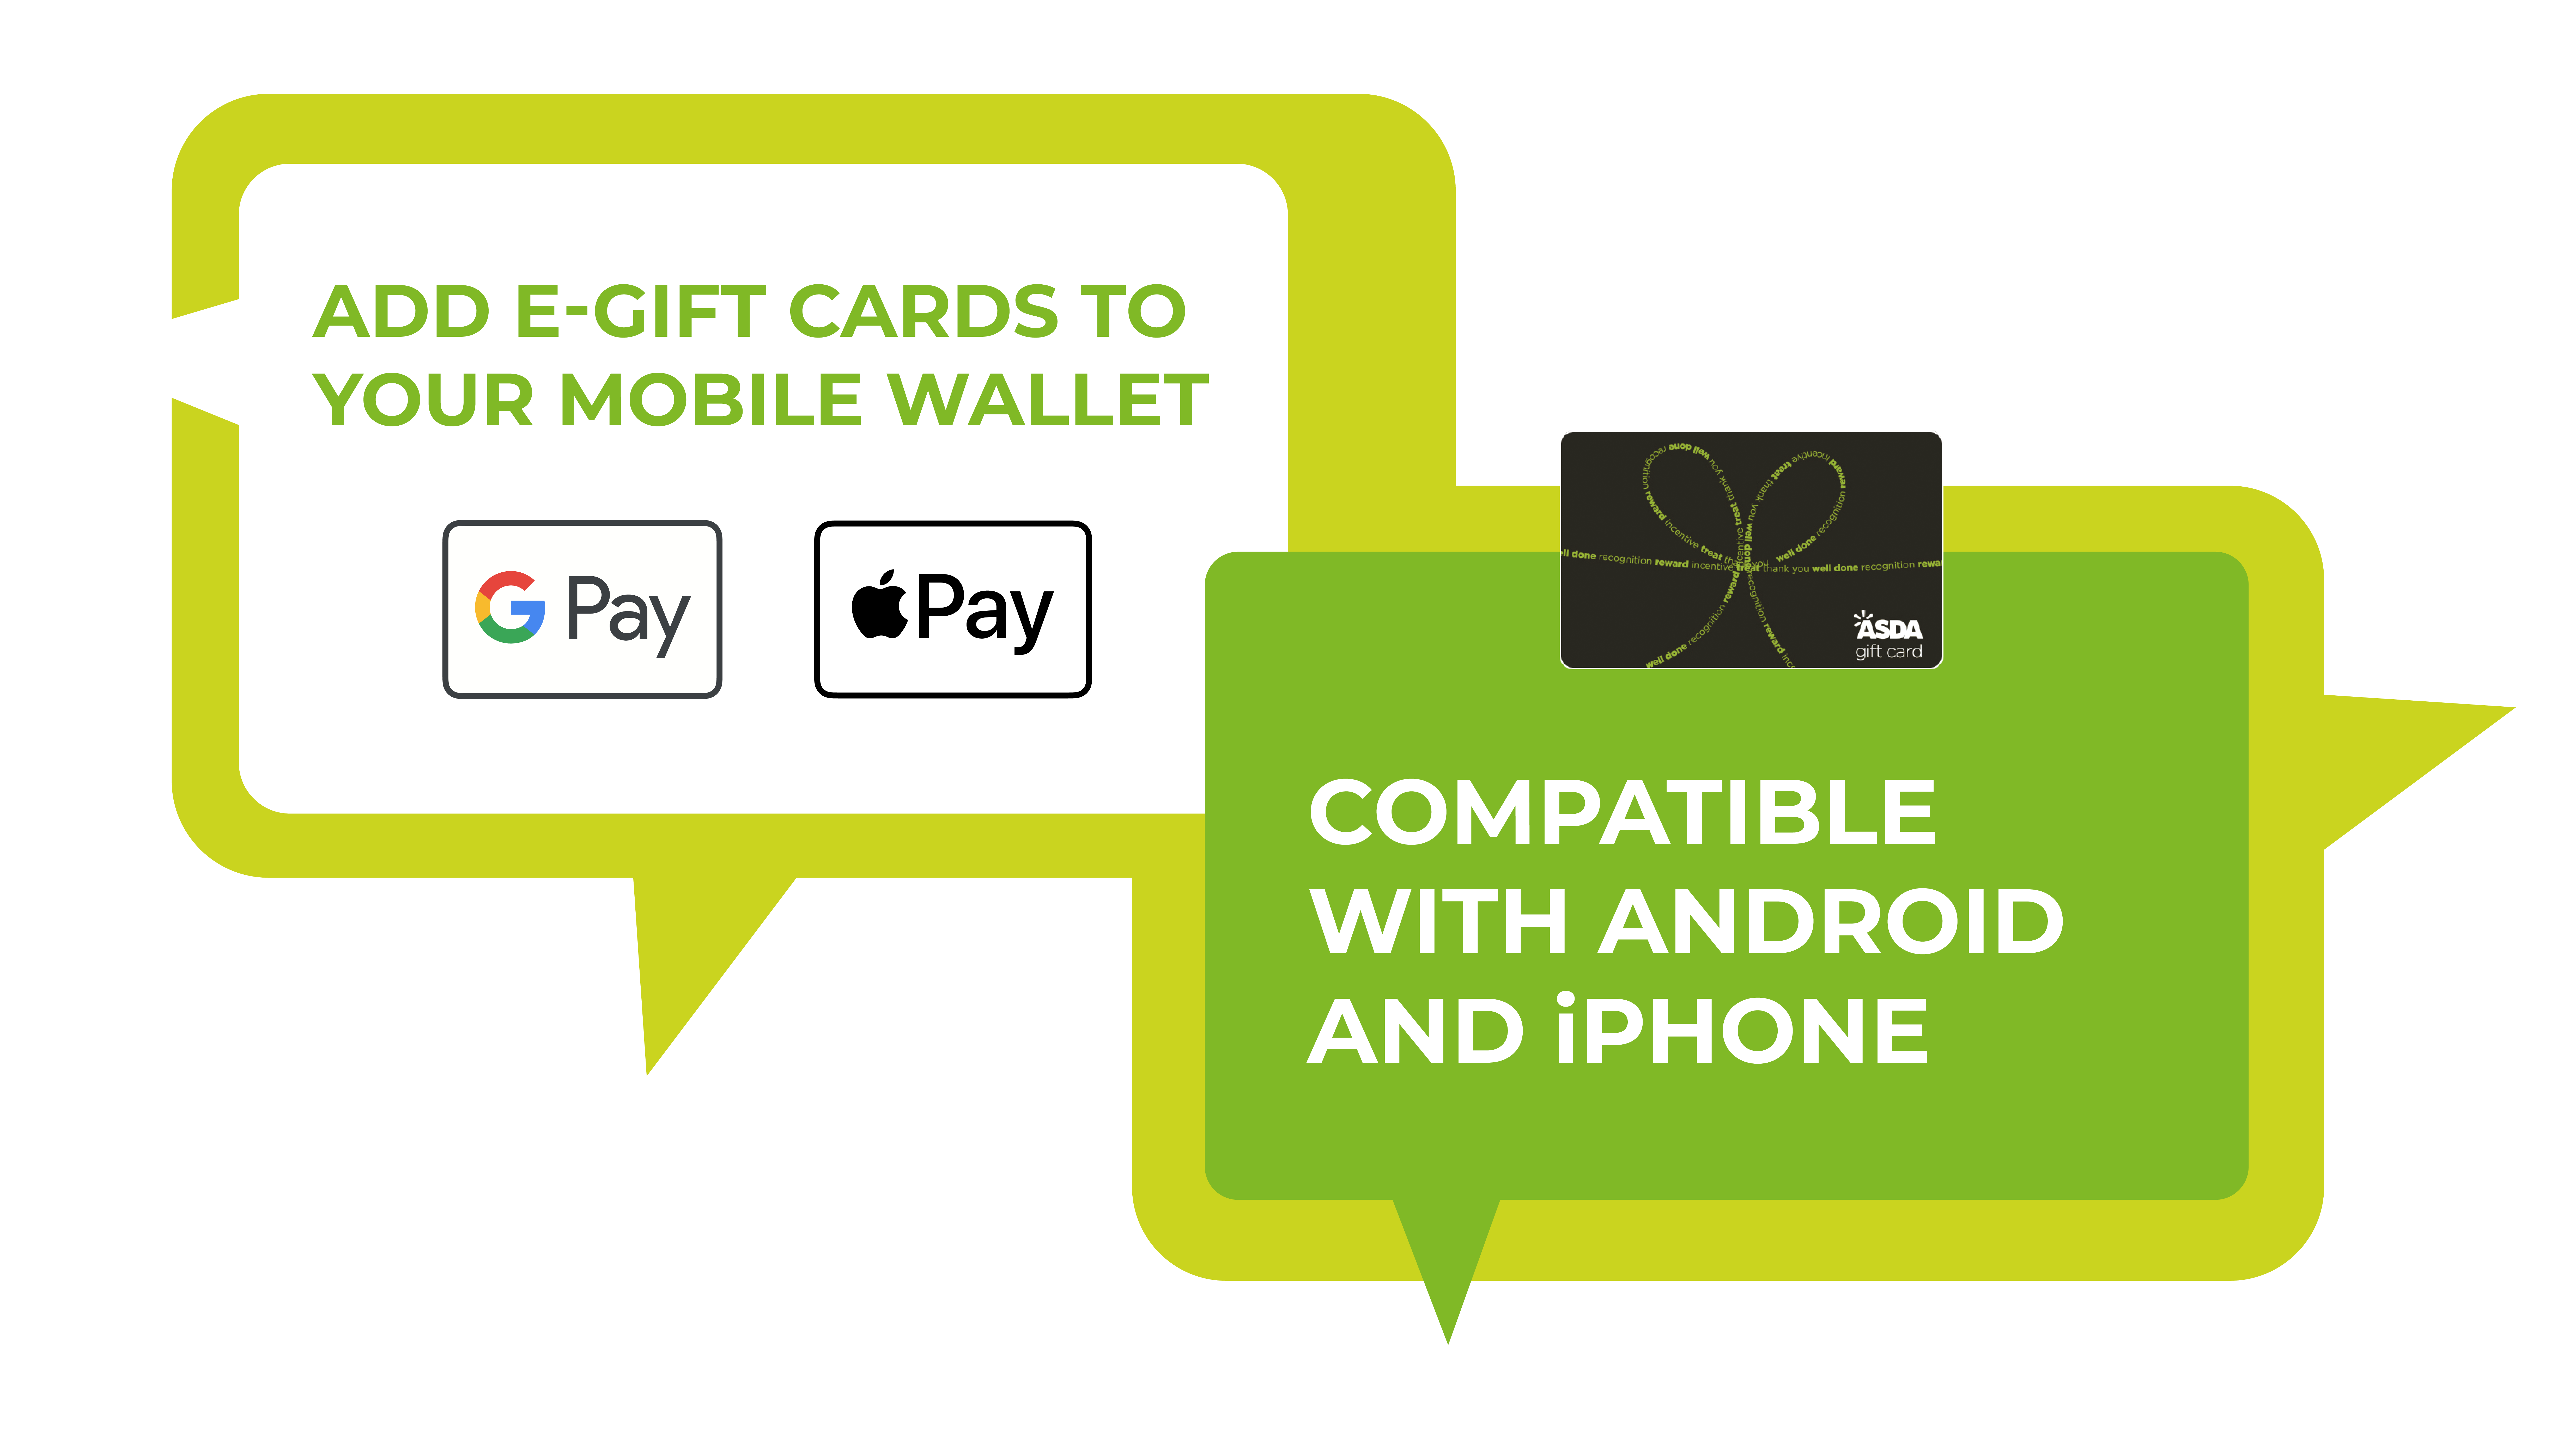 e-gift cards from Asda now Apple Pay and Google Pay compatible